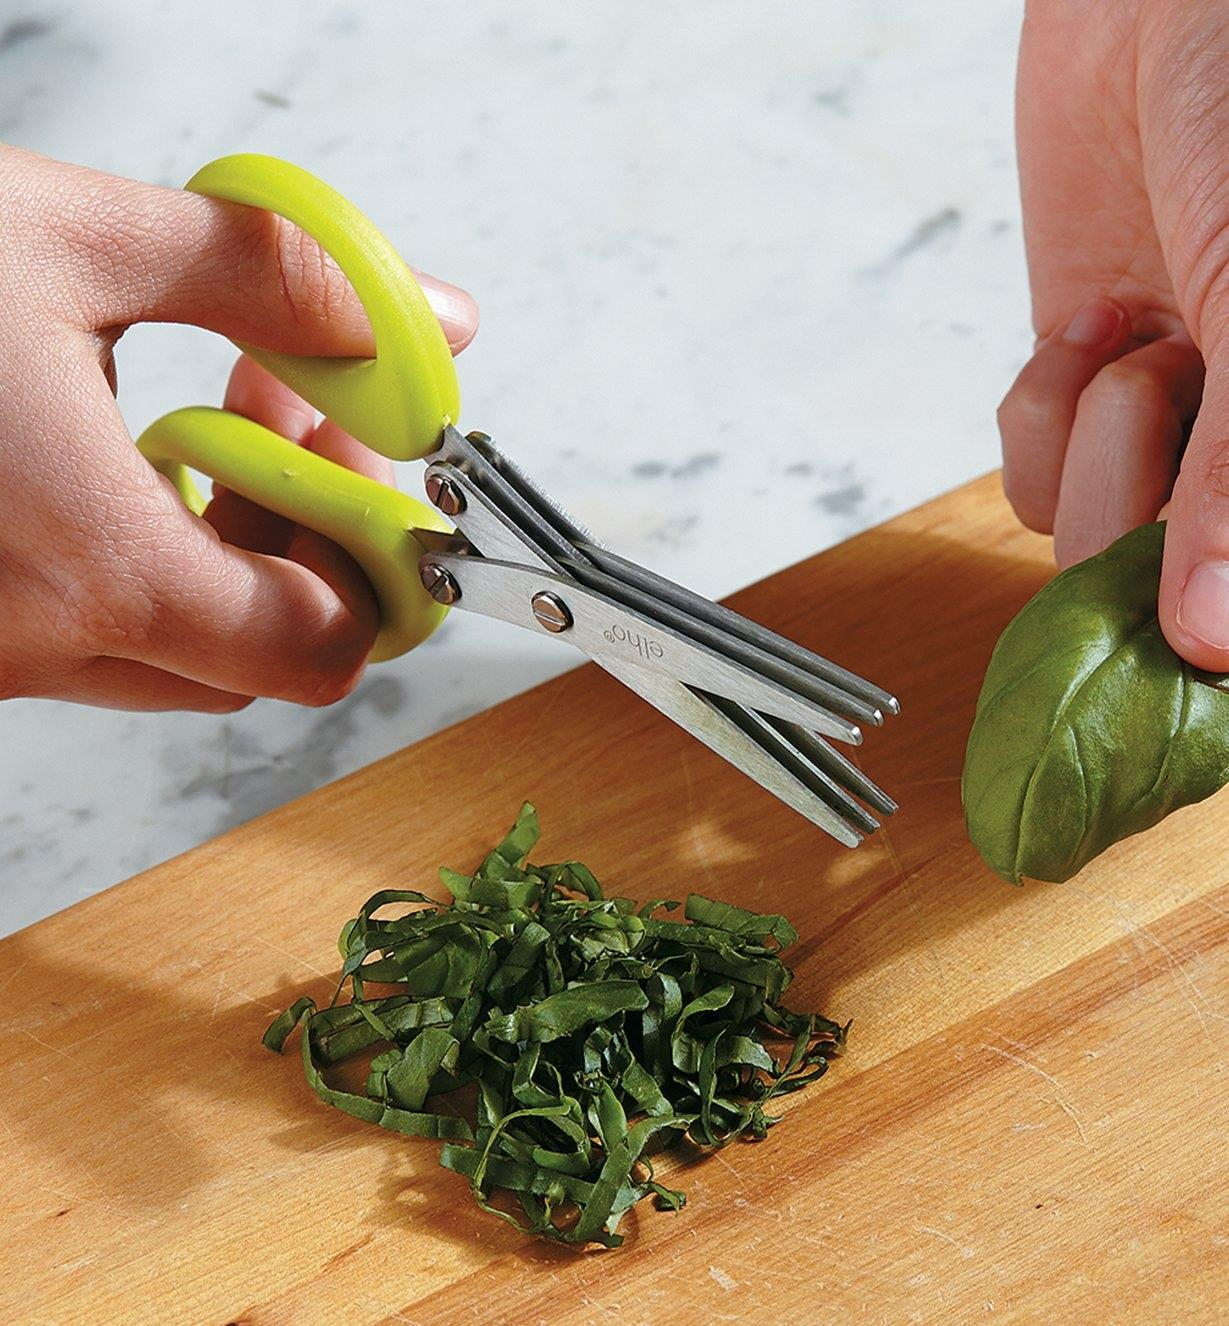 Cutting herbs with the mincing shears